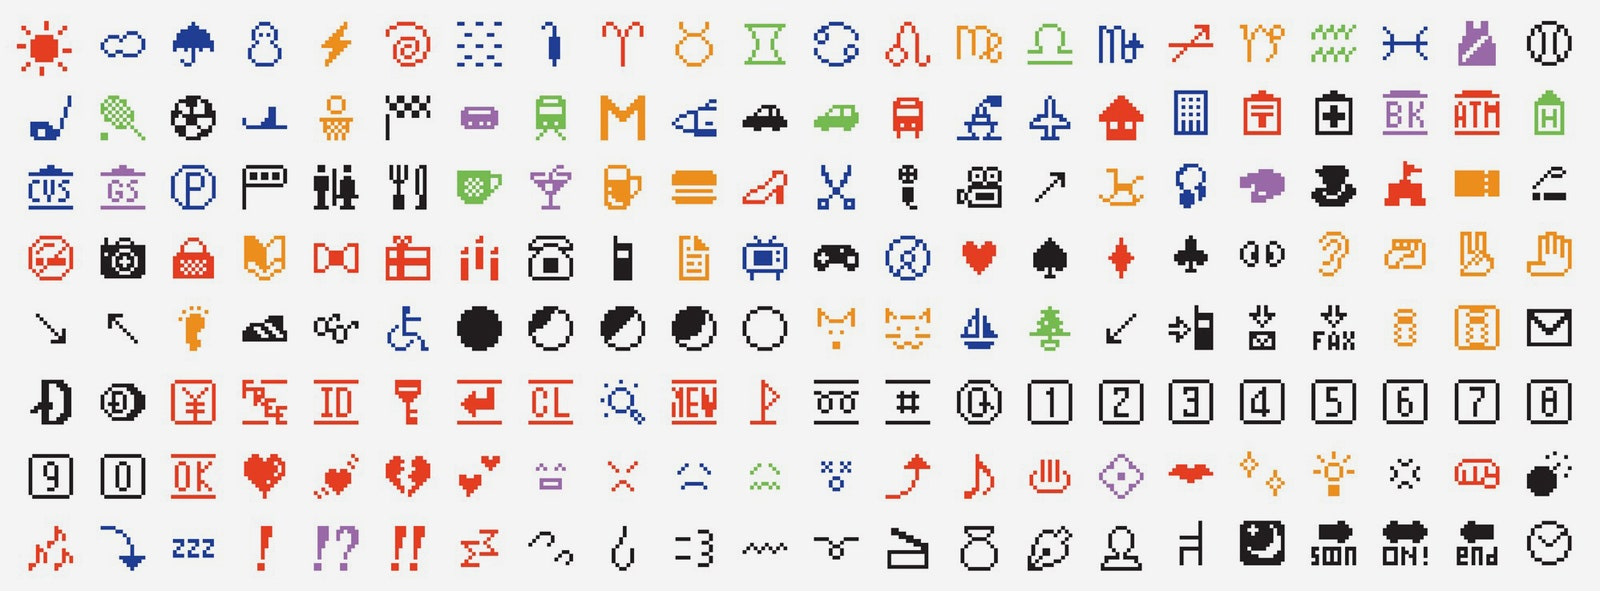 A grid image of the first set of emojis invented by Japanese artist Shigetaka Kurita in 1999